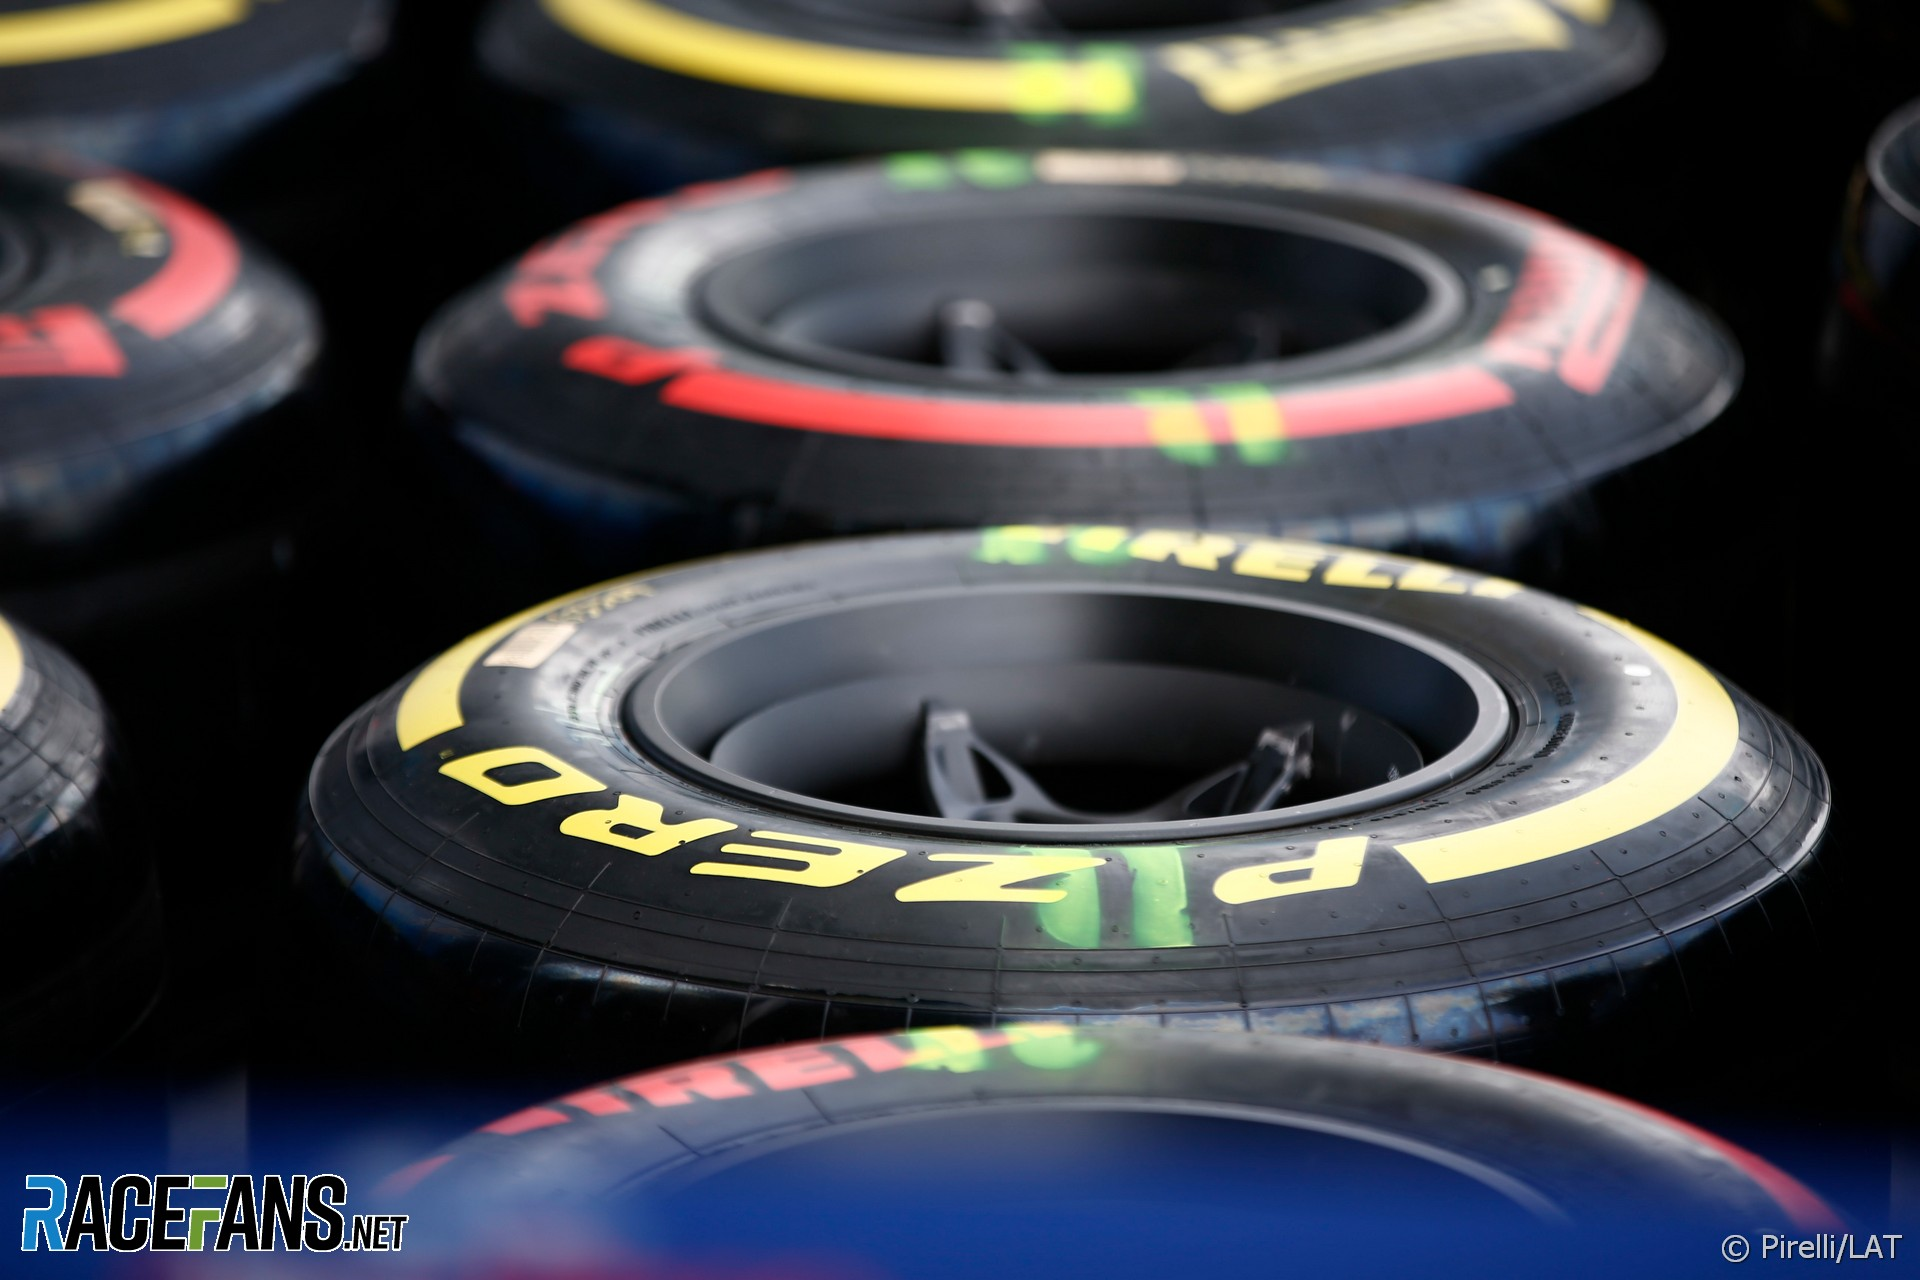 Pirelli to bring softest 'C5' compound to Monaco GP